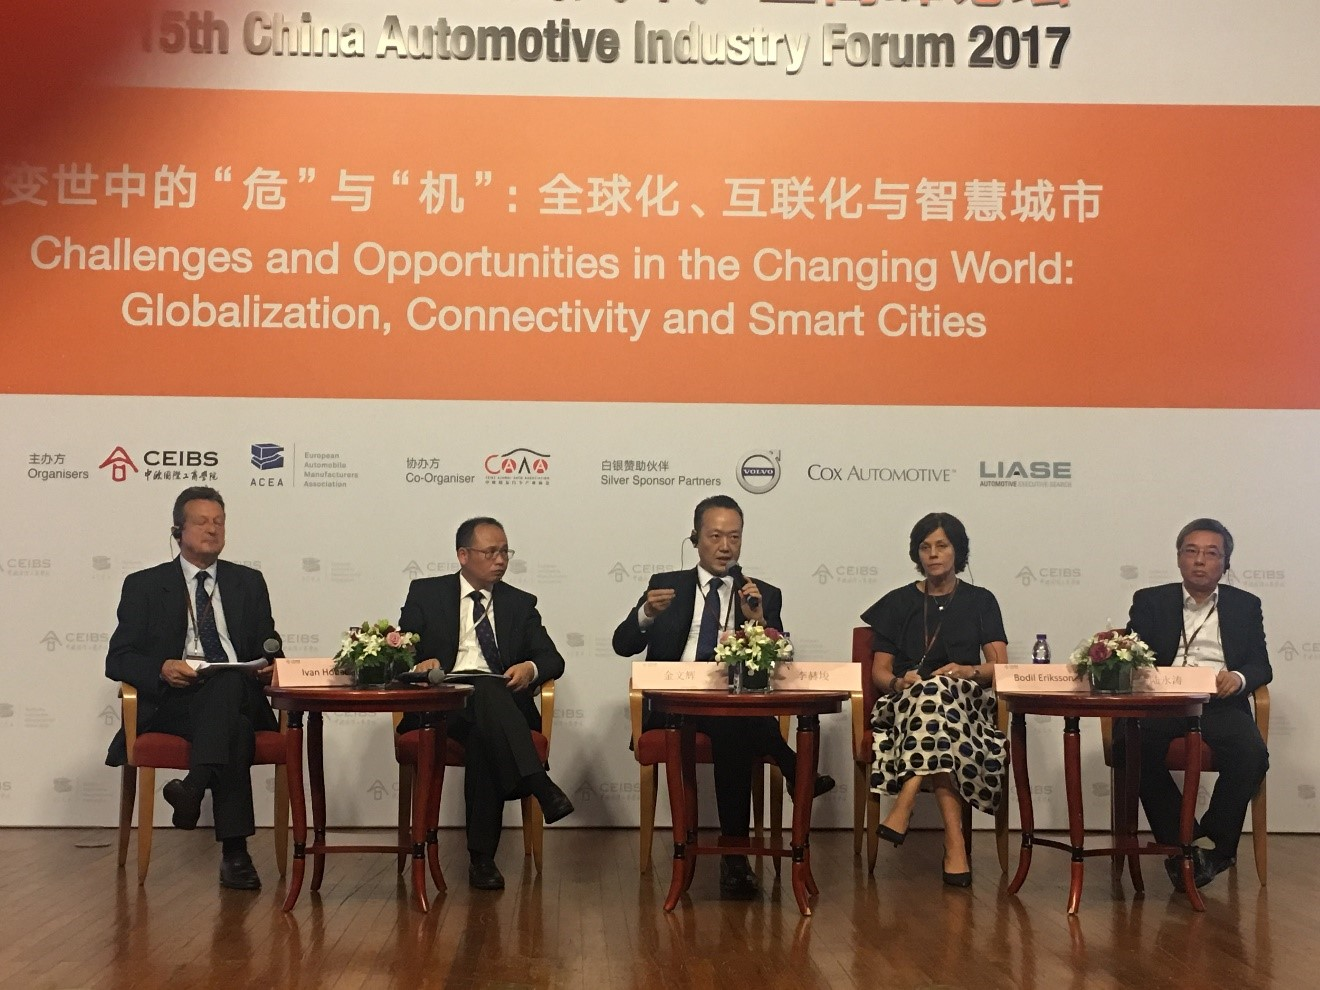 From left to right: Mr. Ivan Hodac, Founder and President, Aspen Institute Prague; Mr. Jin Wenhui, Executive Vice President, Jiangling Motors Co., Ltd.; Mr. Hyuk Joon Lee, Vice President, Hyundai Motor Group (China) Ltd.; Ms. Bodil Eriksson, Chief Executive Officer, Volvo Cars Mobility; Mr. Lu Yongtao, Director and General Manager of SAIC Capital, Chairman and General Manager of SAIC Venture Capital.